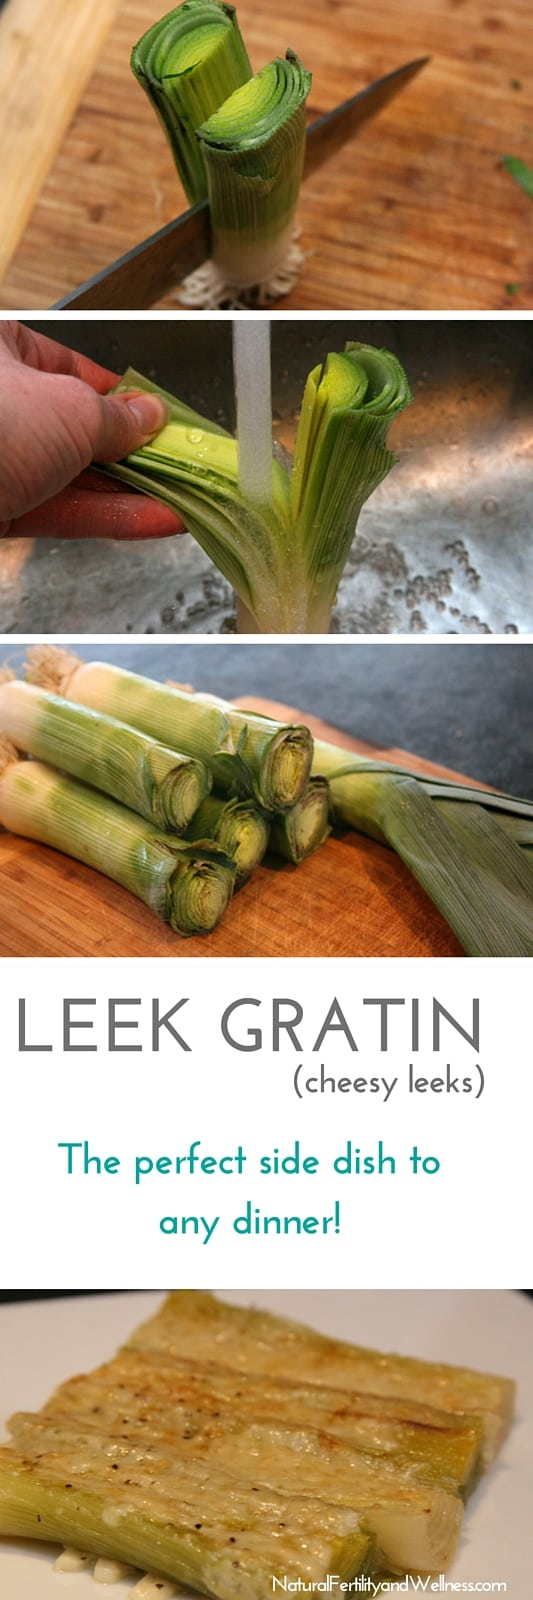 Leek Gratin - a cheesy side dish!